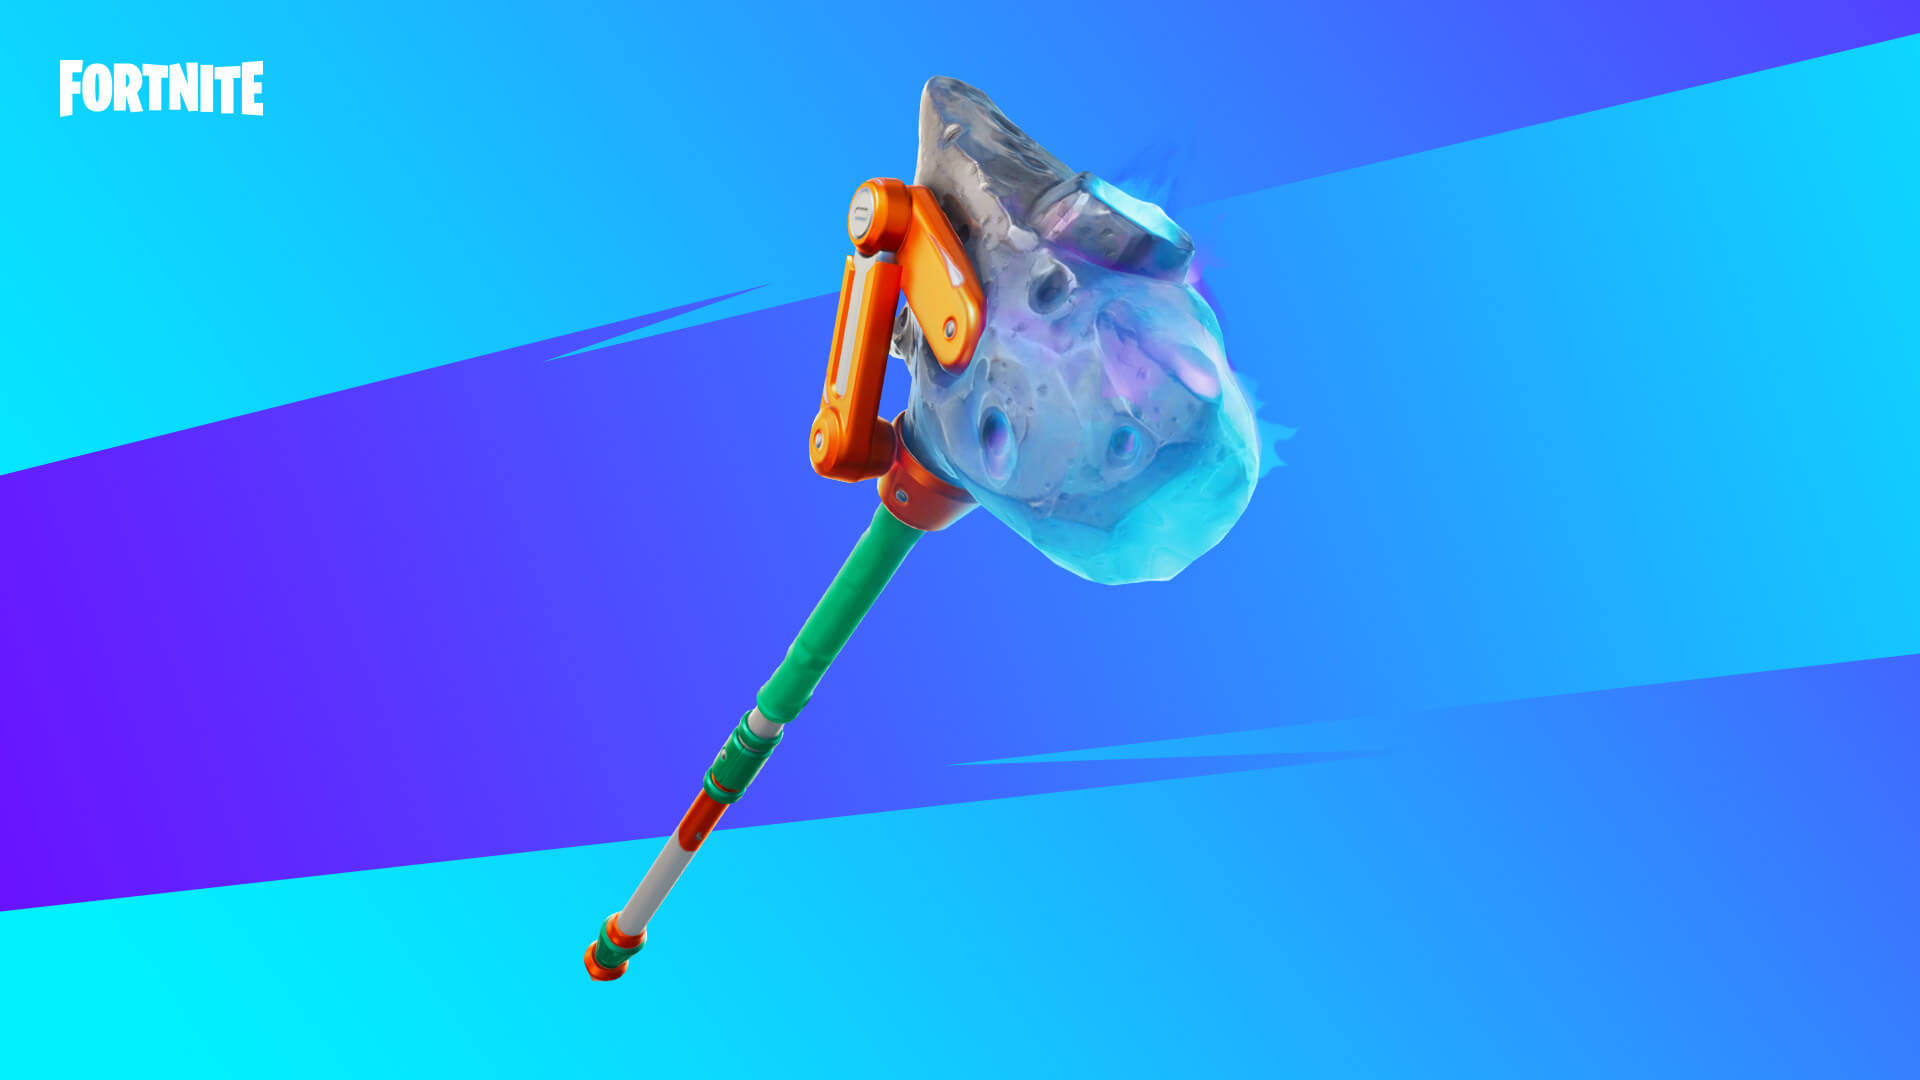 Fortnite Shooting Starstaff Pickaxe